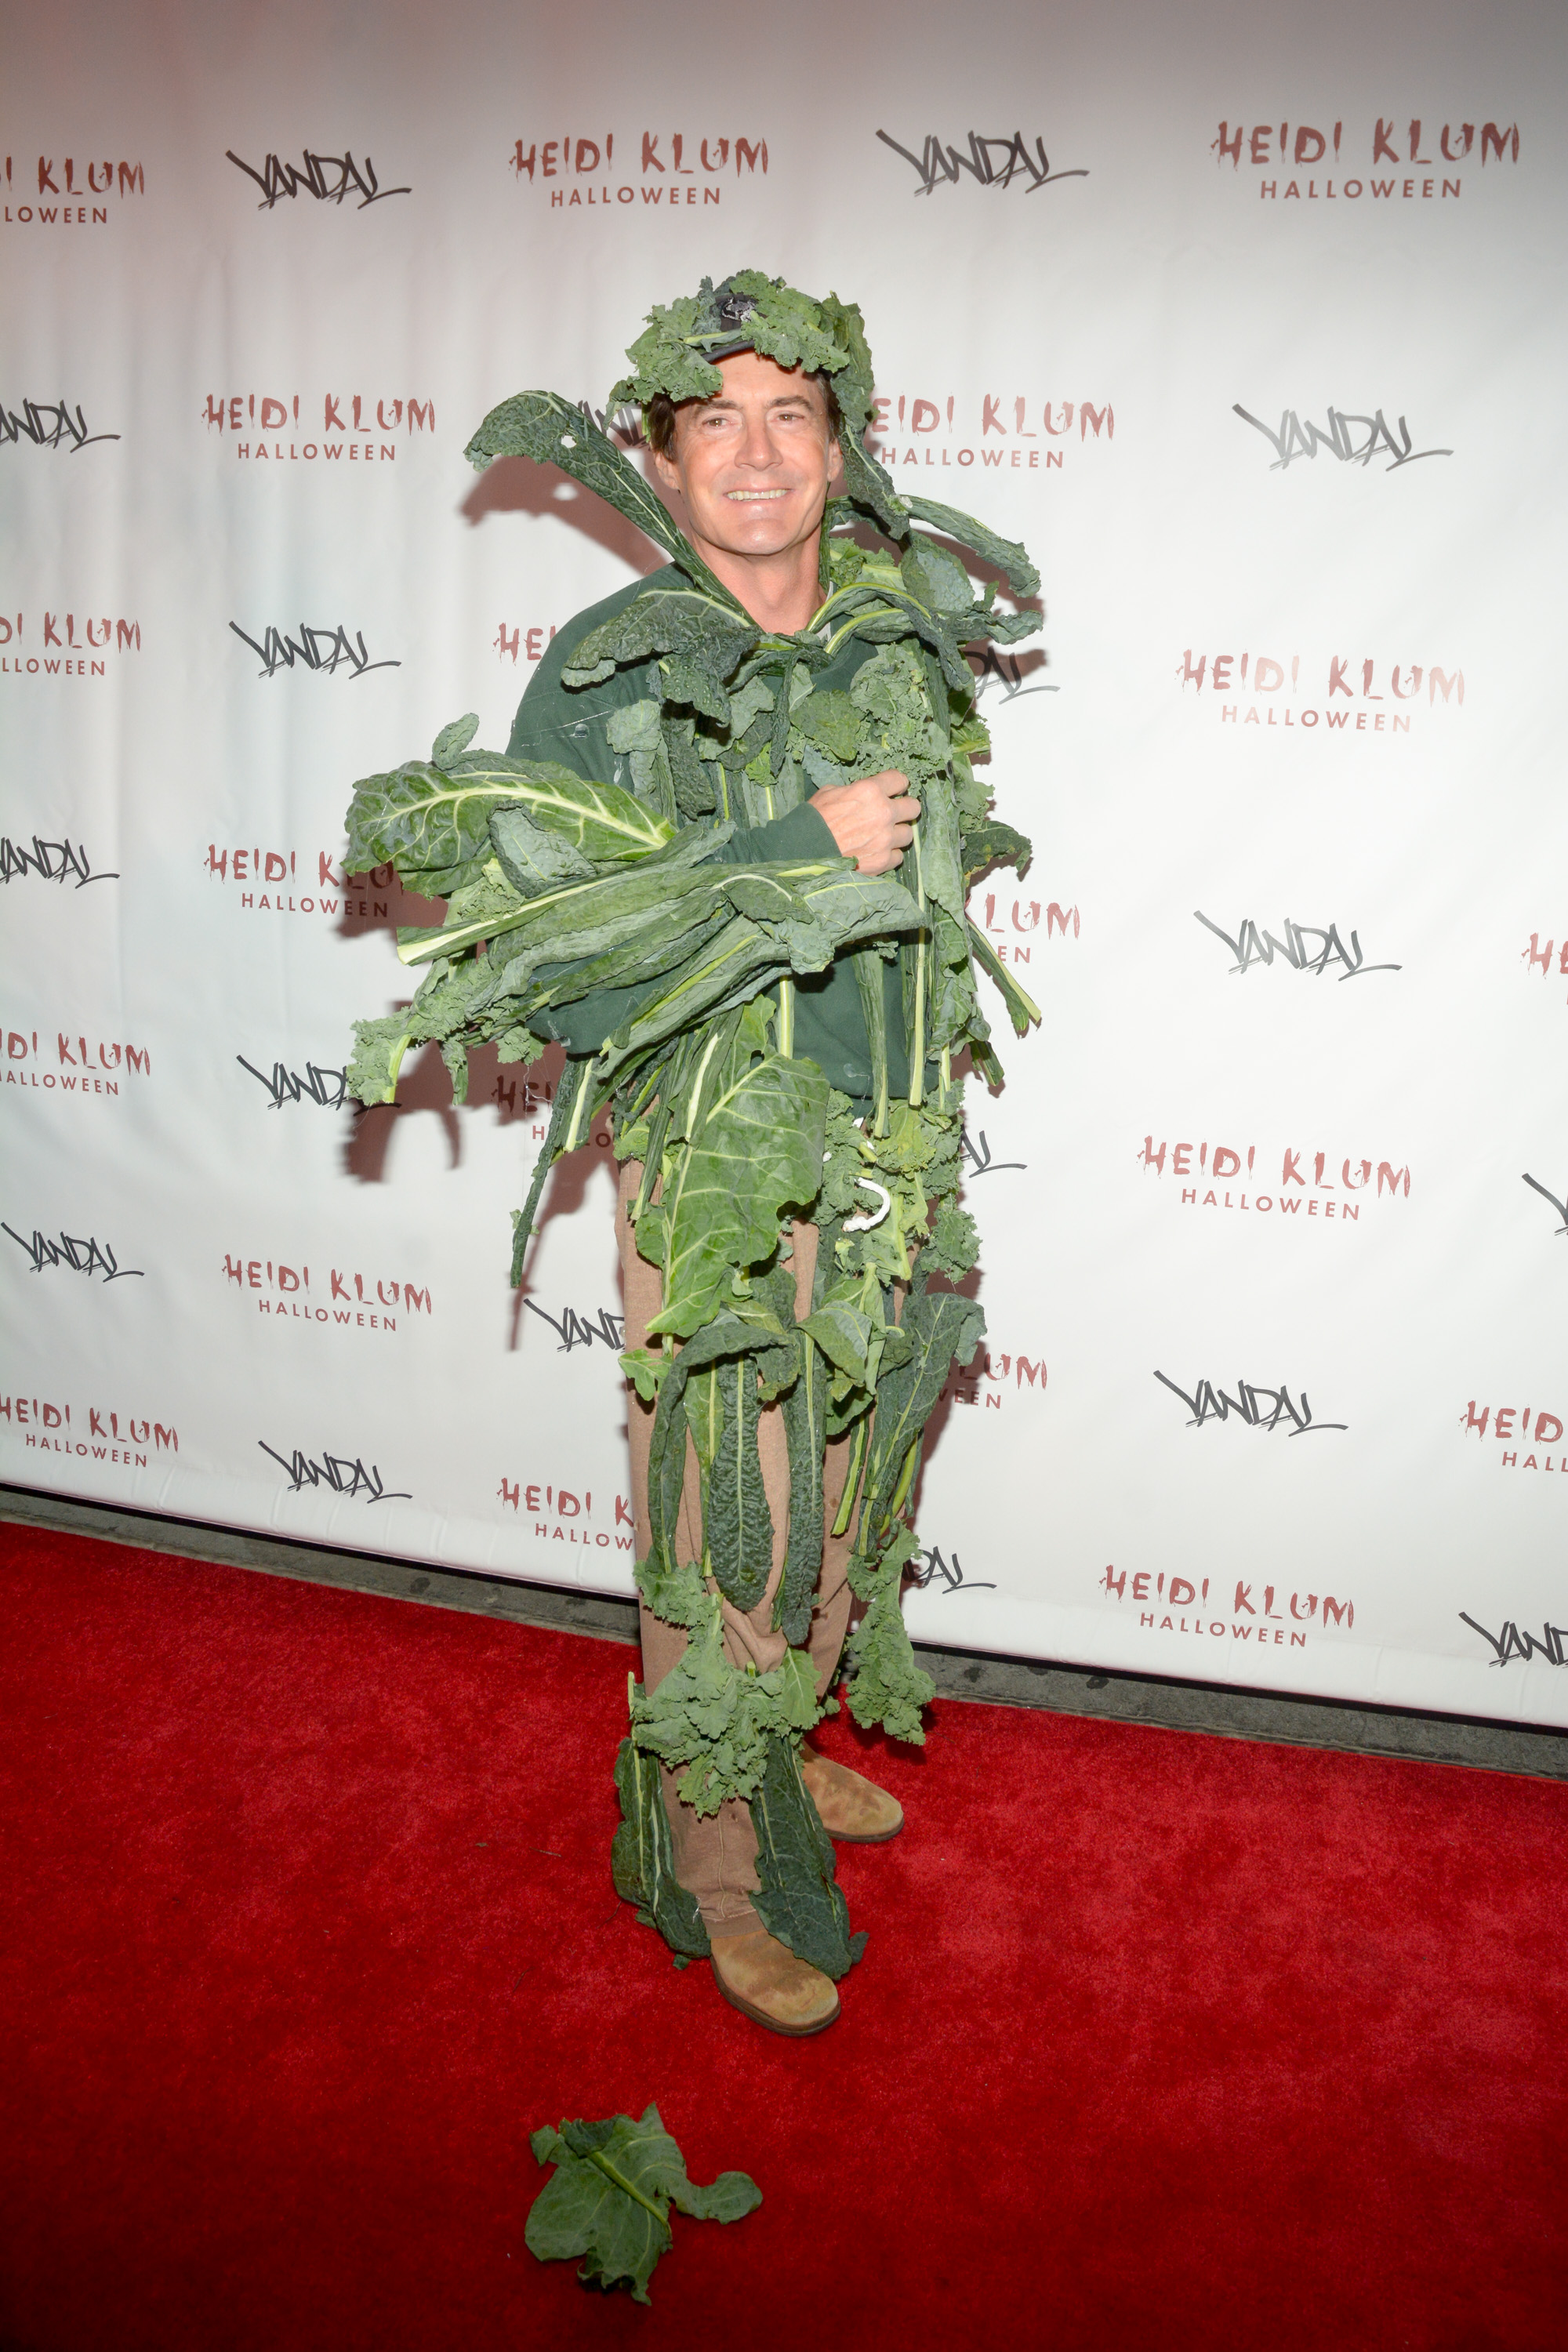 Best Interpretation of Food: On more than one occasion, Kyle McLachlan has embodied food realistically and tastefully; in 2016, he came as kale, while in 2011, he came as cheese in a can.